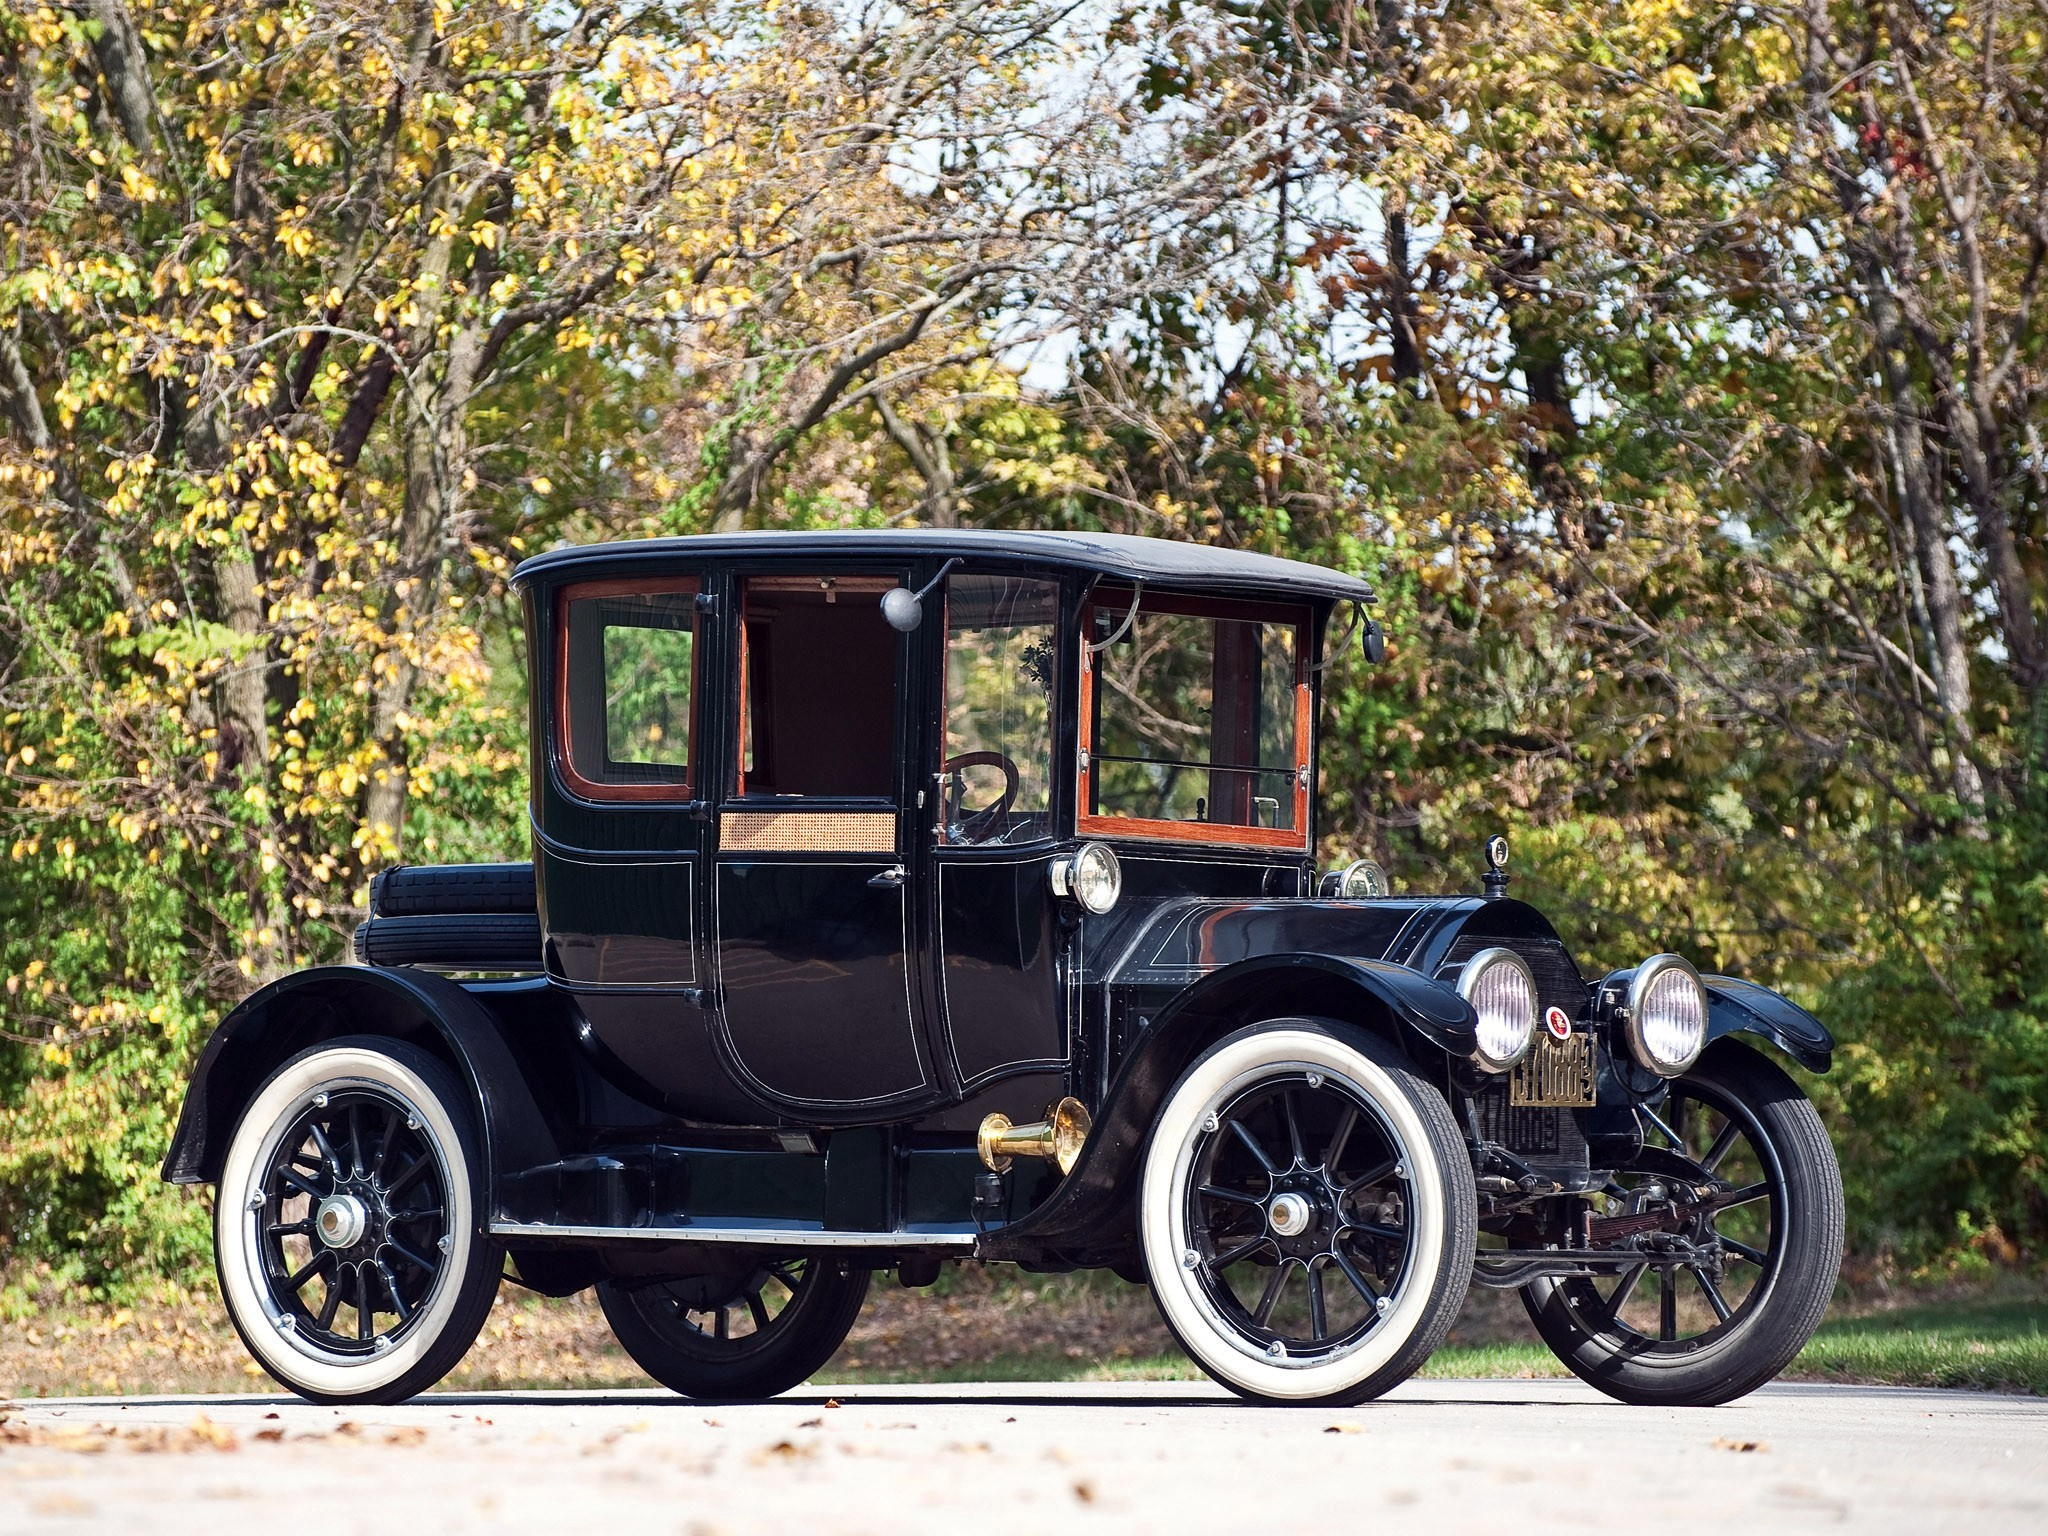 Cadillac Coupe 1913 Wallpaper